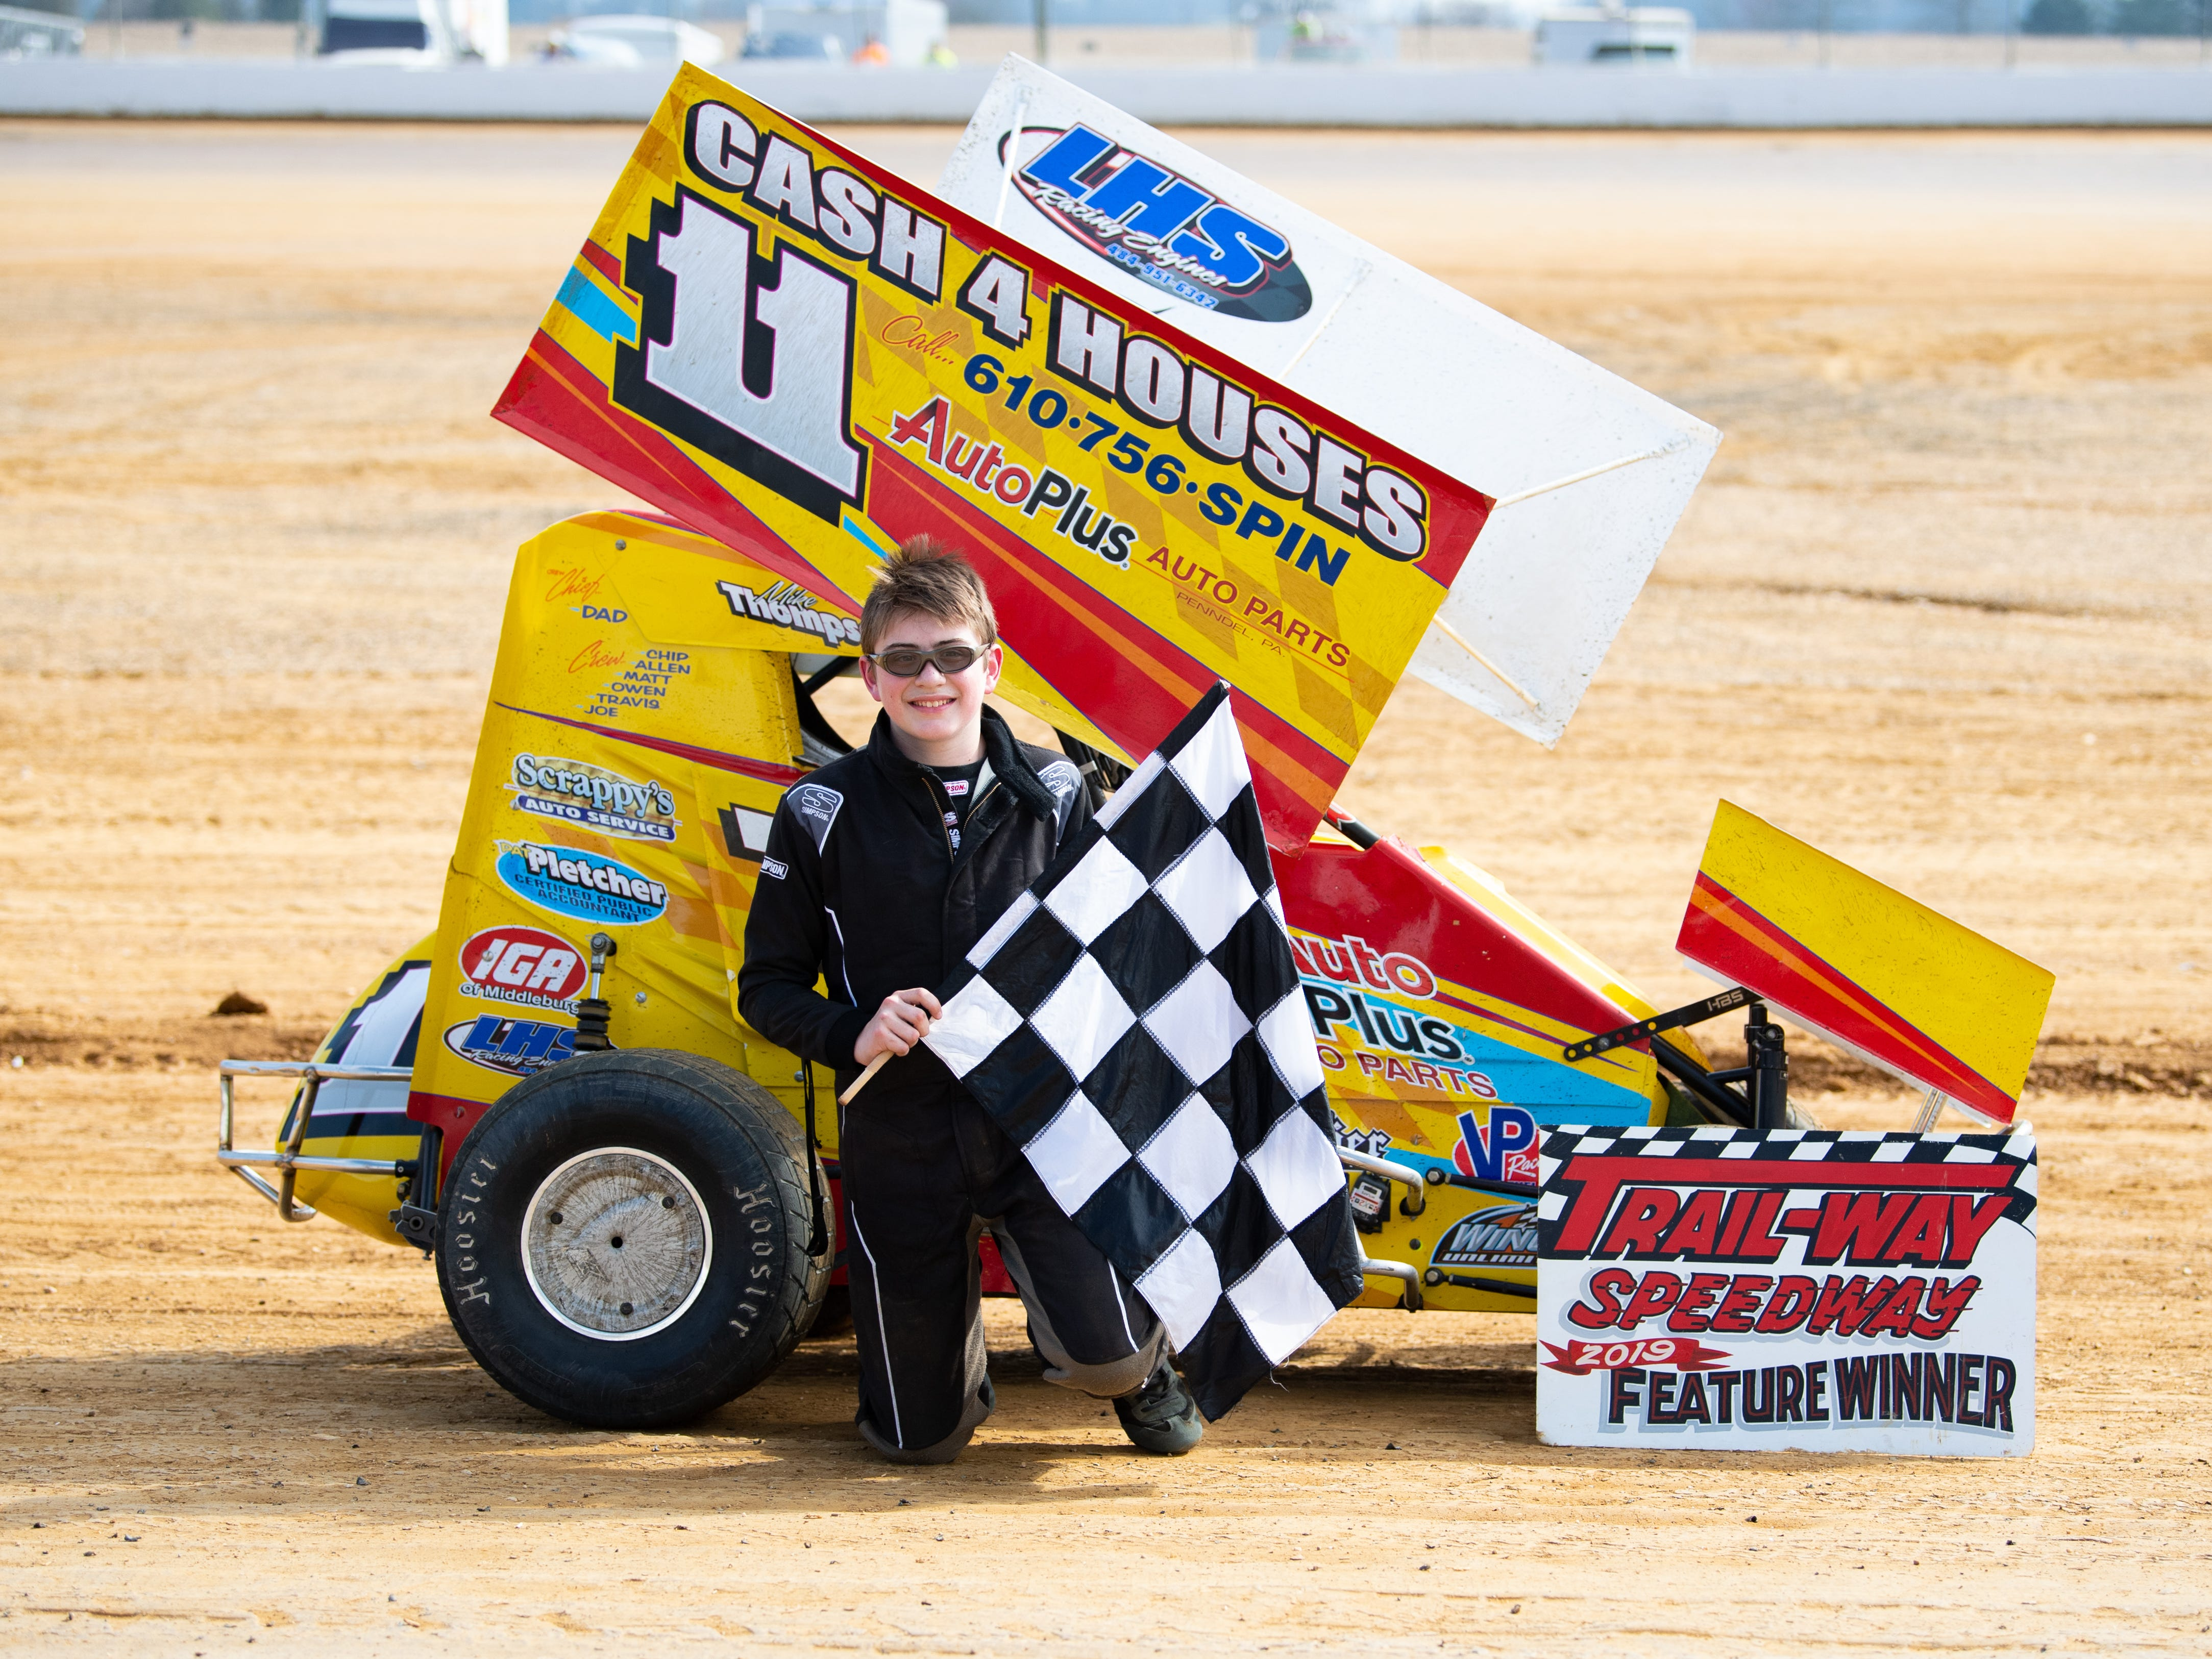 Michael Thompson (11) poses after winning his heat in the 600 Micro Sprints during the Trail-Way Speedway season opener, April 6, 2019.